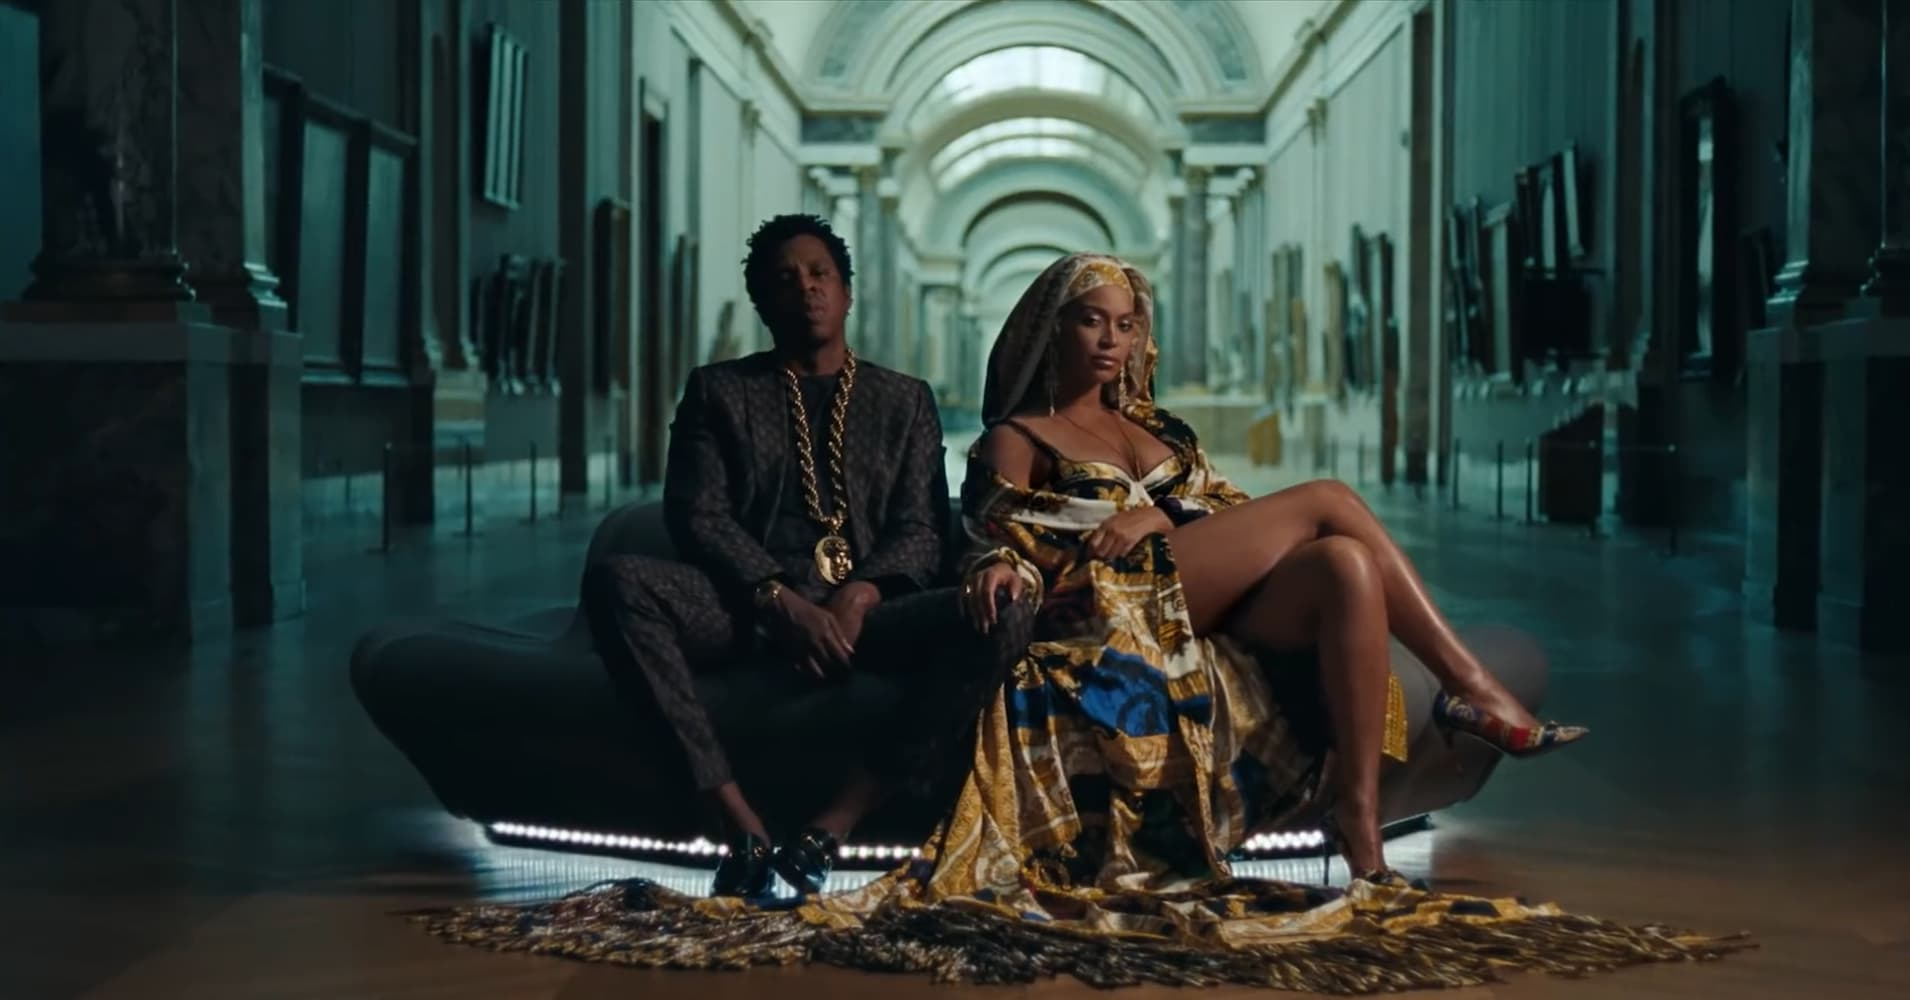 This is how much everything costs in Beyonce and Jay-Z's 'Apes---' video